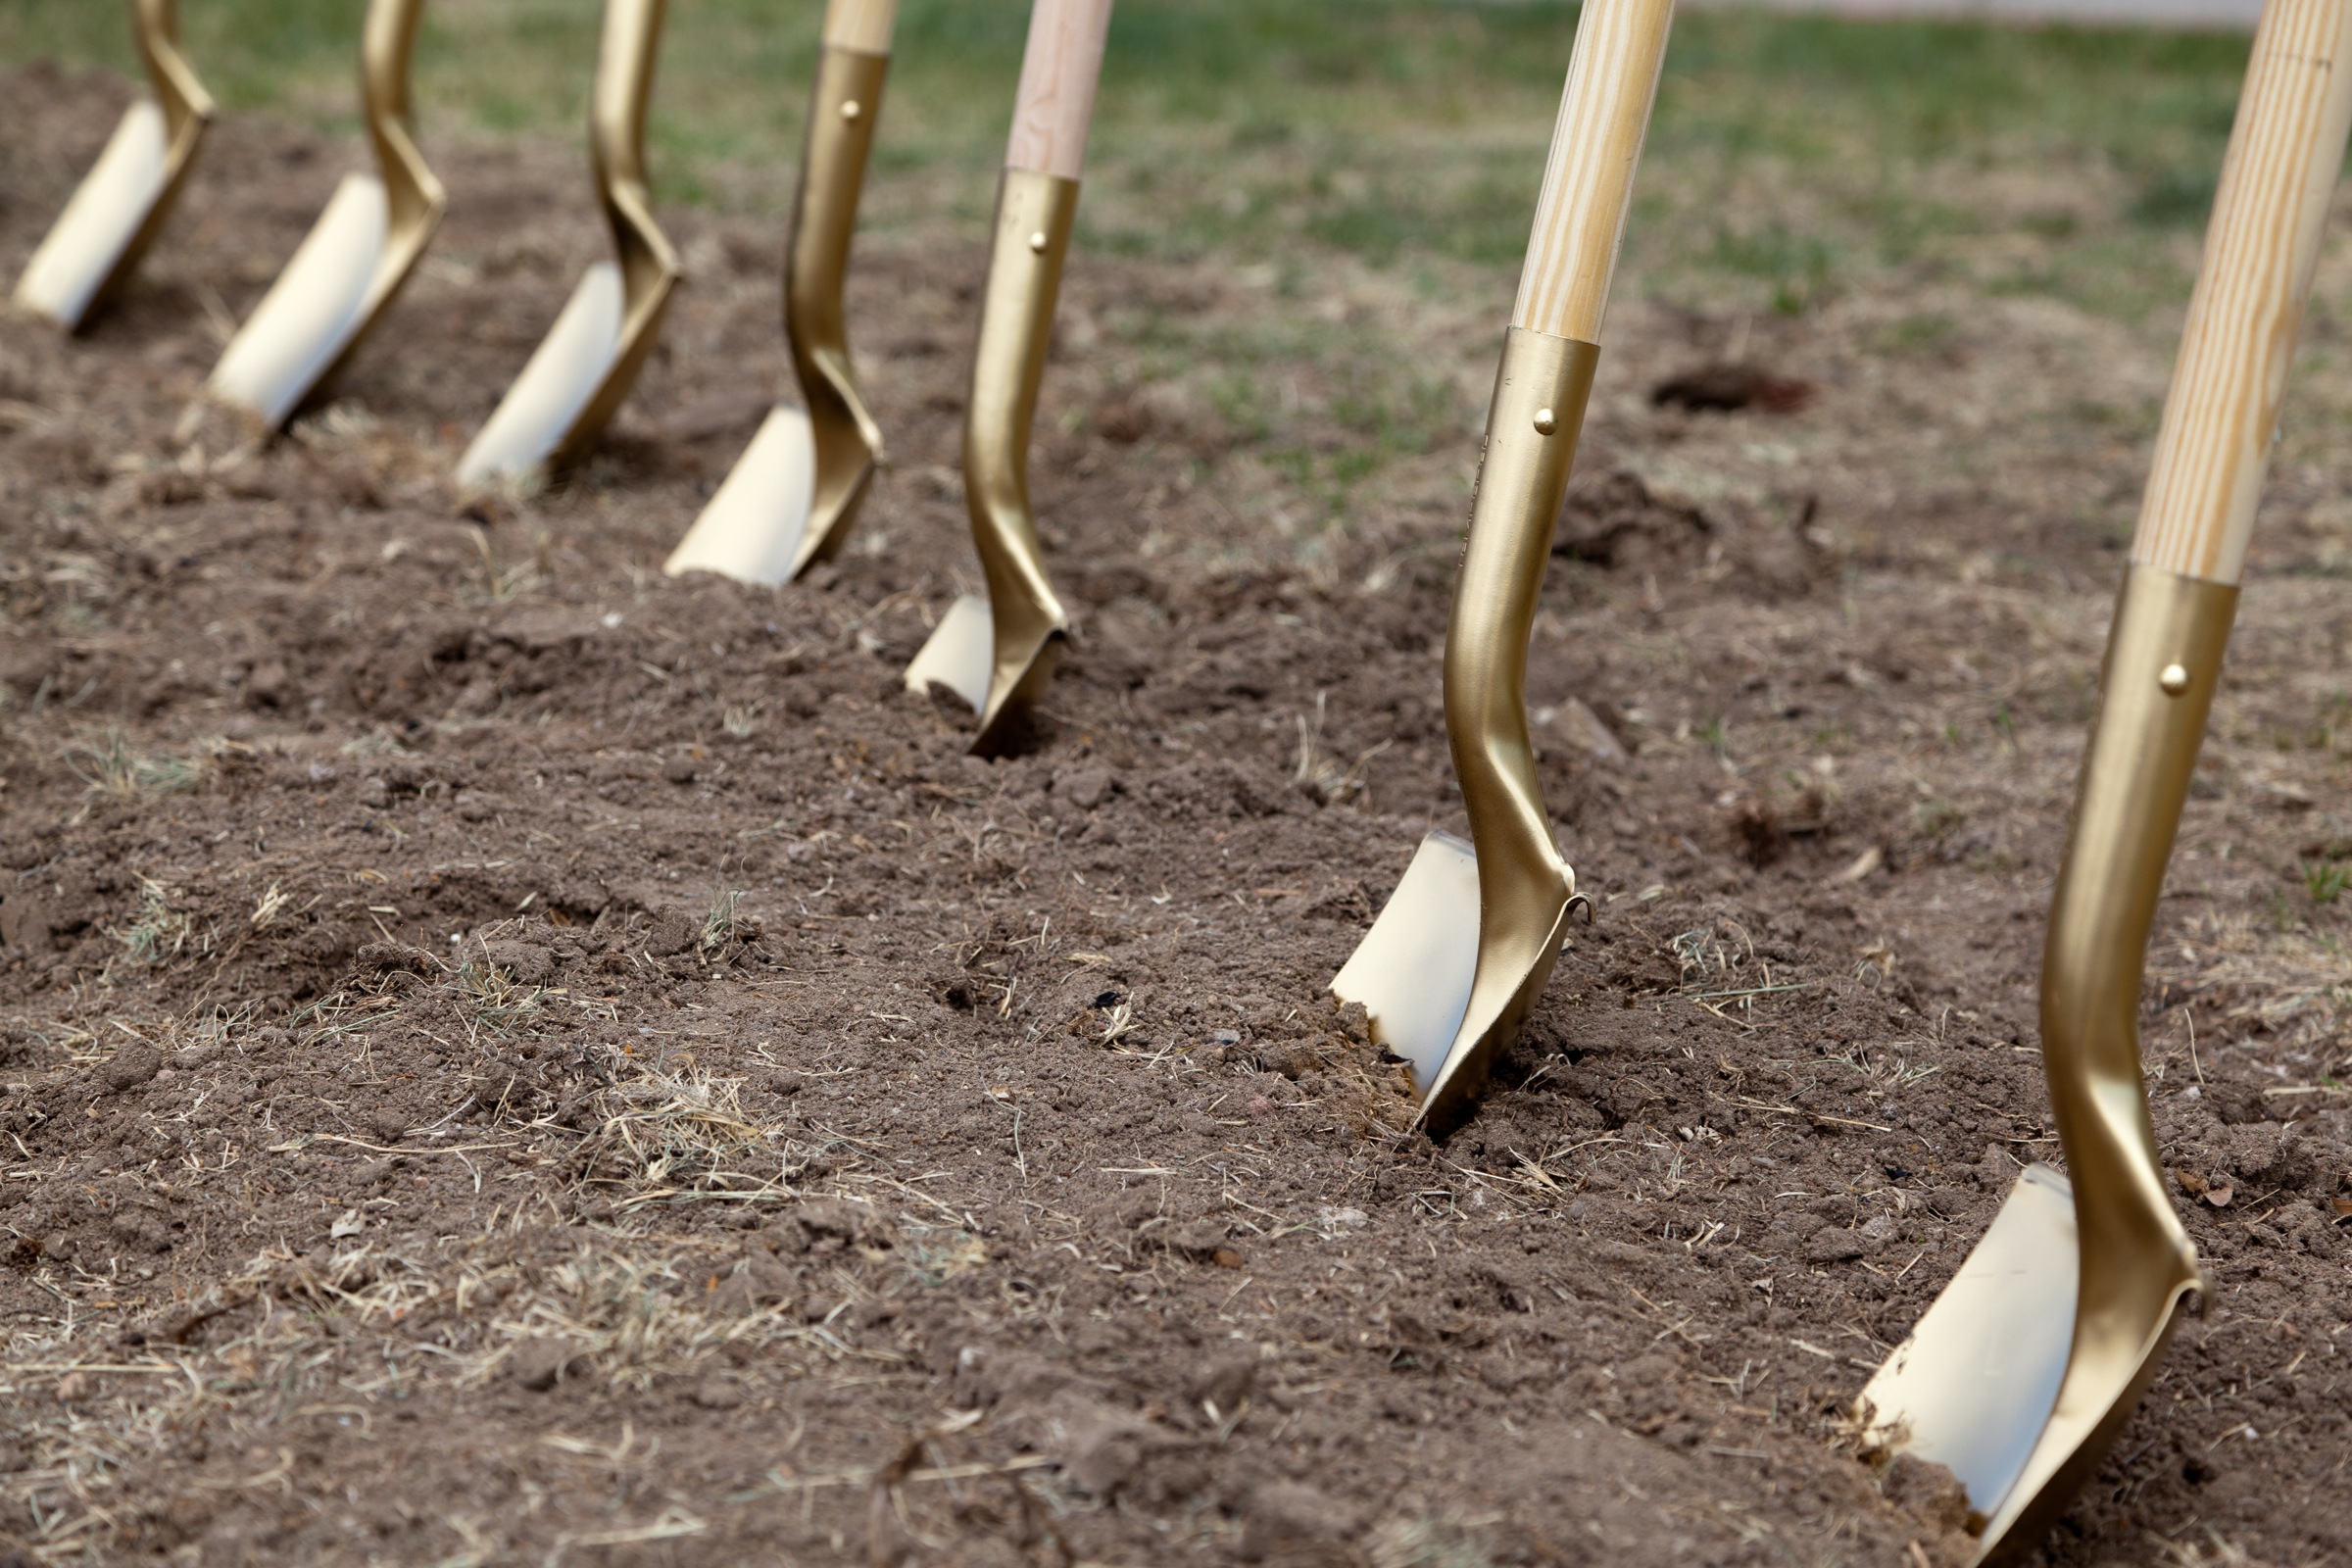 shovels in dirt